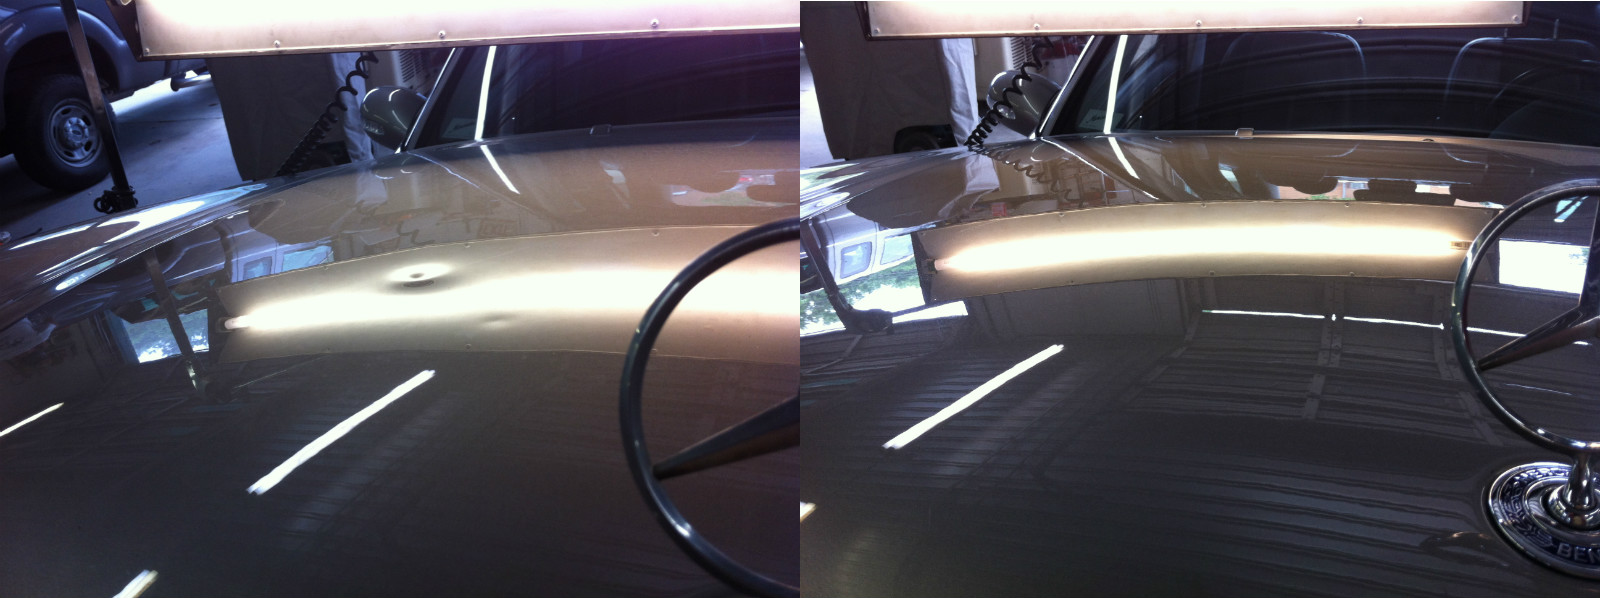 Paintless Dent Repair Cost >> Mercedes E350 Aluminum Hood with Hail Damage Before and After PDR Repair - Dent Biz - Paintless ...